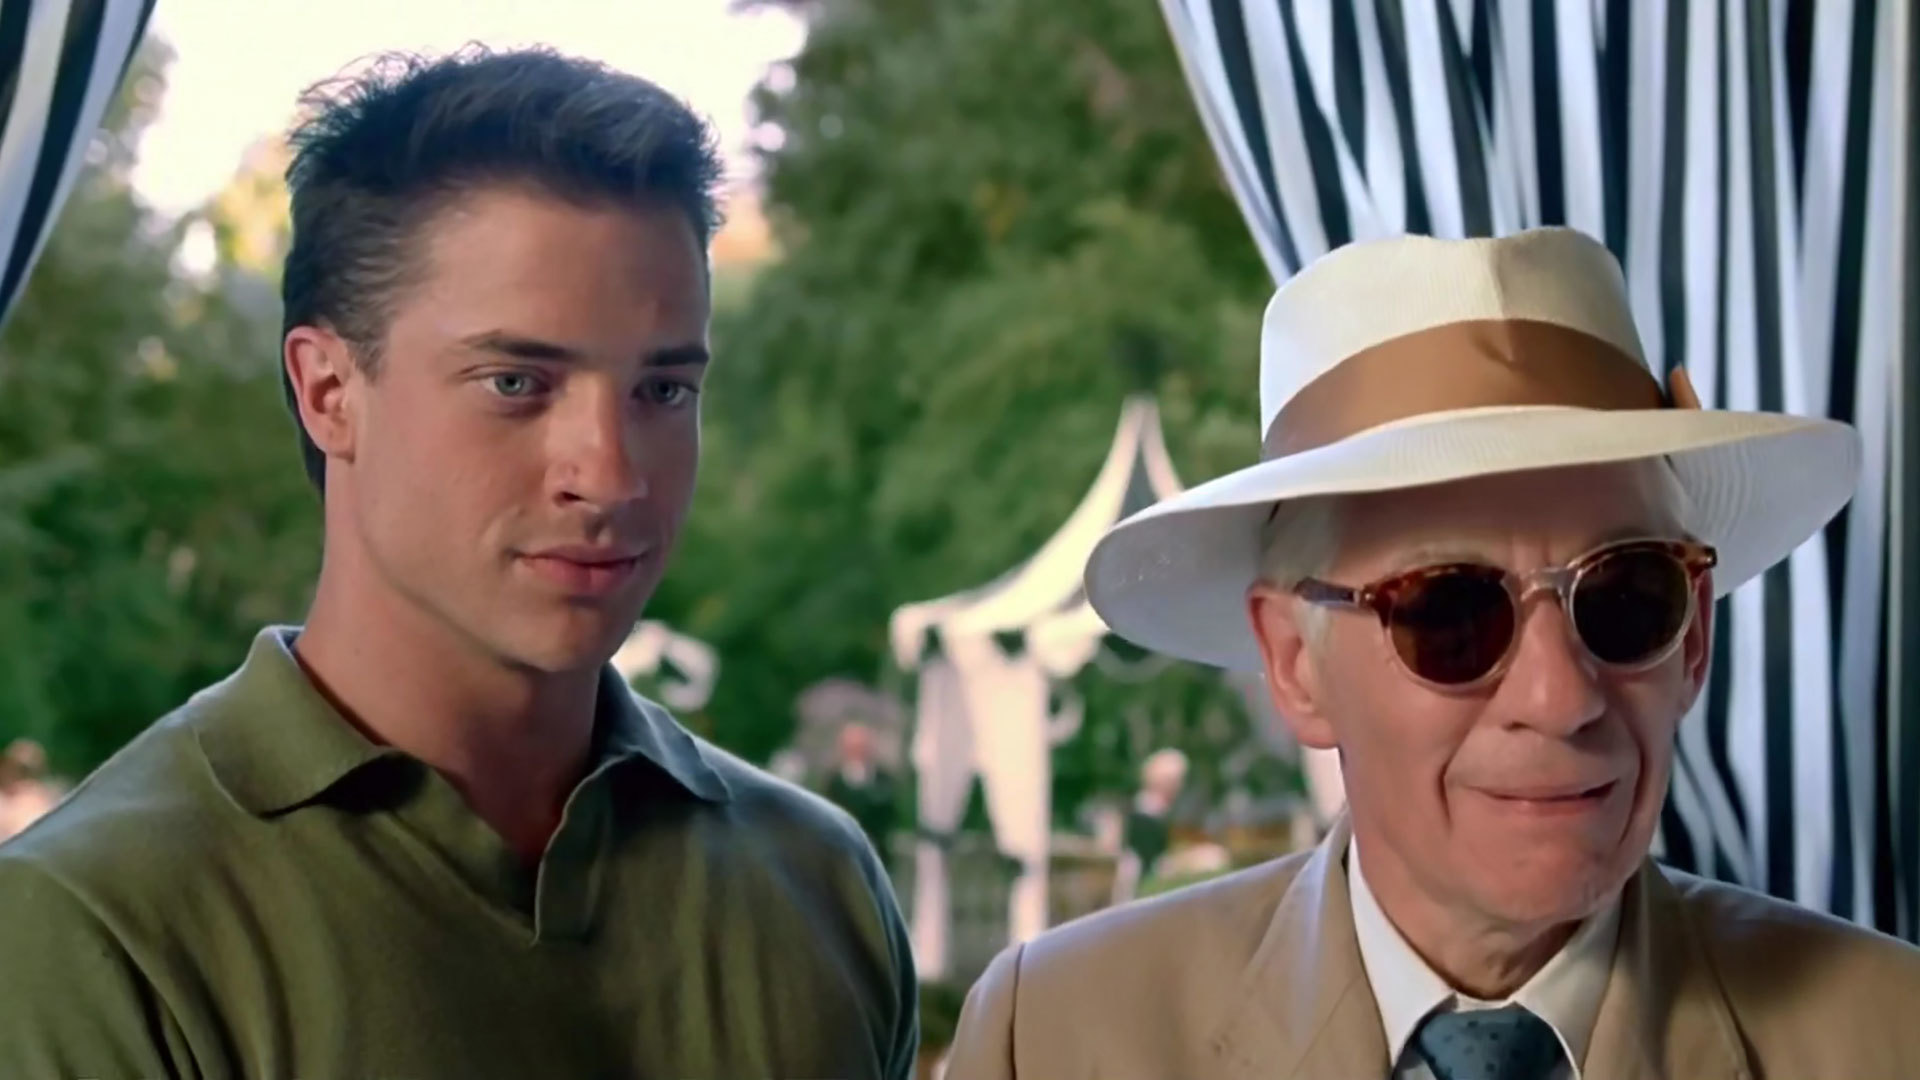 an analysis of the movie gods and monsters directed by james whale Directed by sam irvin, david j skal with clive barker, bill condon, curtis harrington, christopher bram as a teen nick kroll watched wayne's world for a year, but cites a 1970s dance movie as his big mouth inspiration curtis harrington  himself - director, friend of james whale.